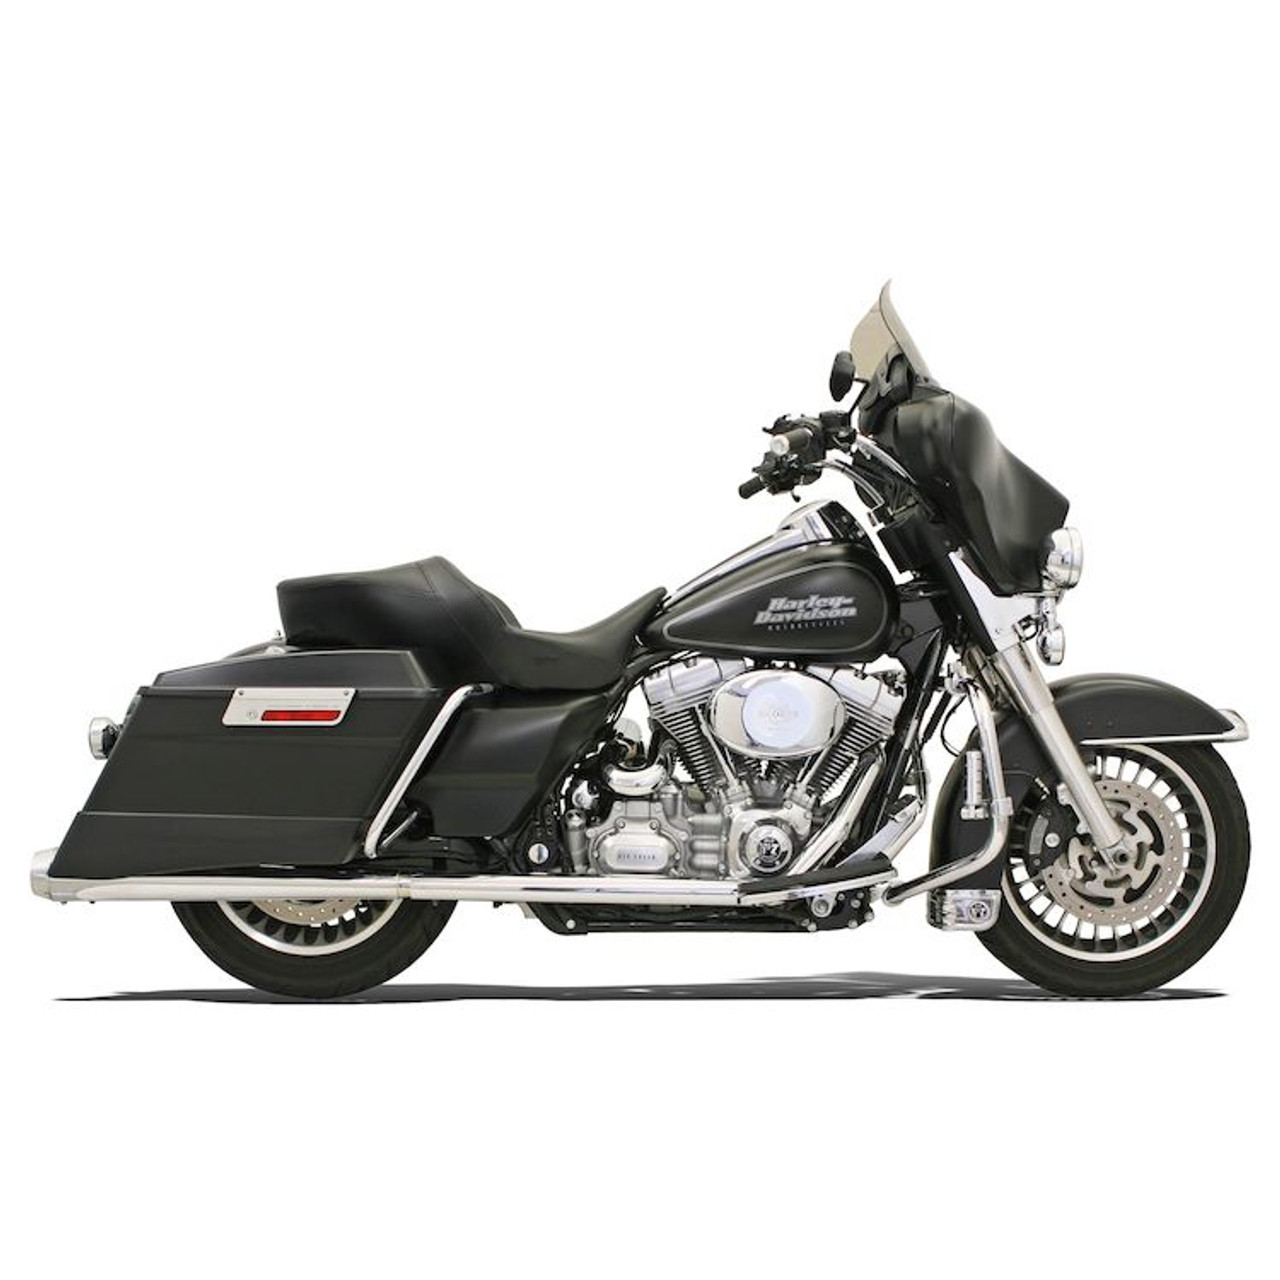 bassani power curve true dual crossover header pipes for 09 16 harley davidson touring models chrome